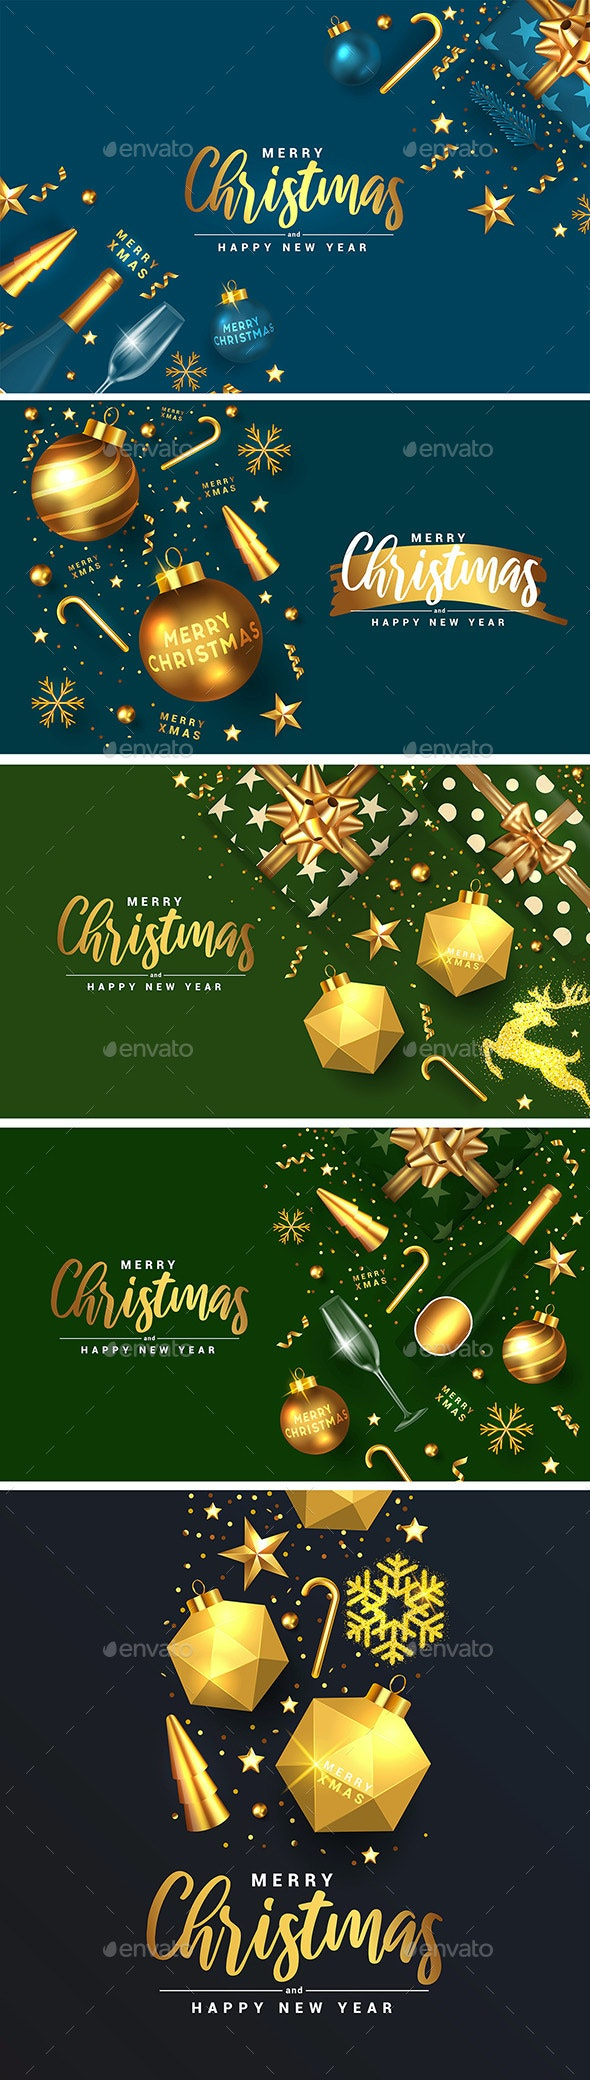 merry christmas and happy new year banner by graphics4u graphicriver https graphicriver net item merry christmas and happy new year banner 25266371